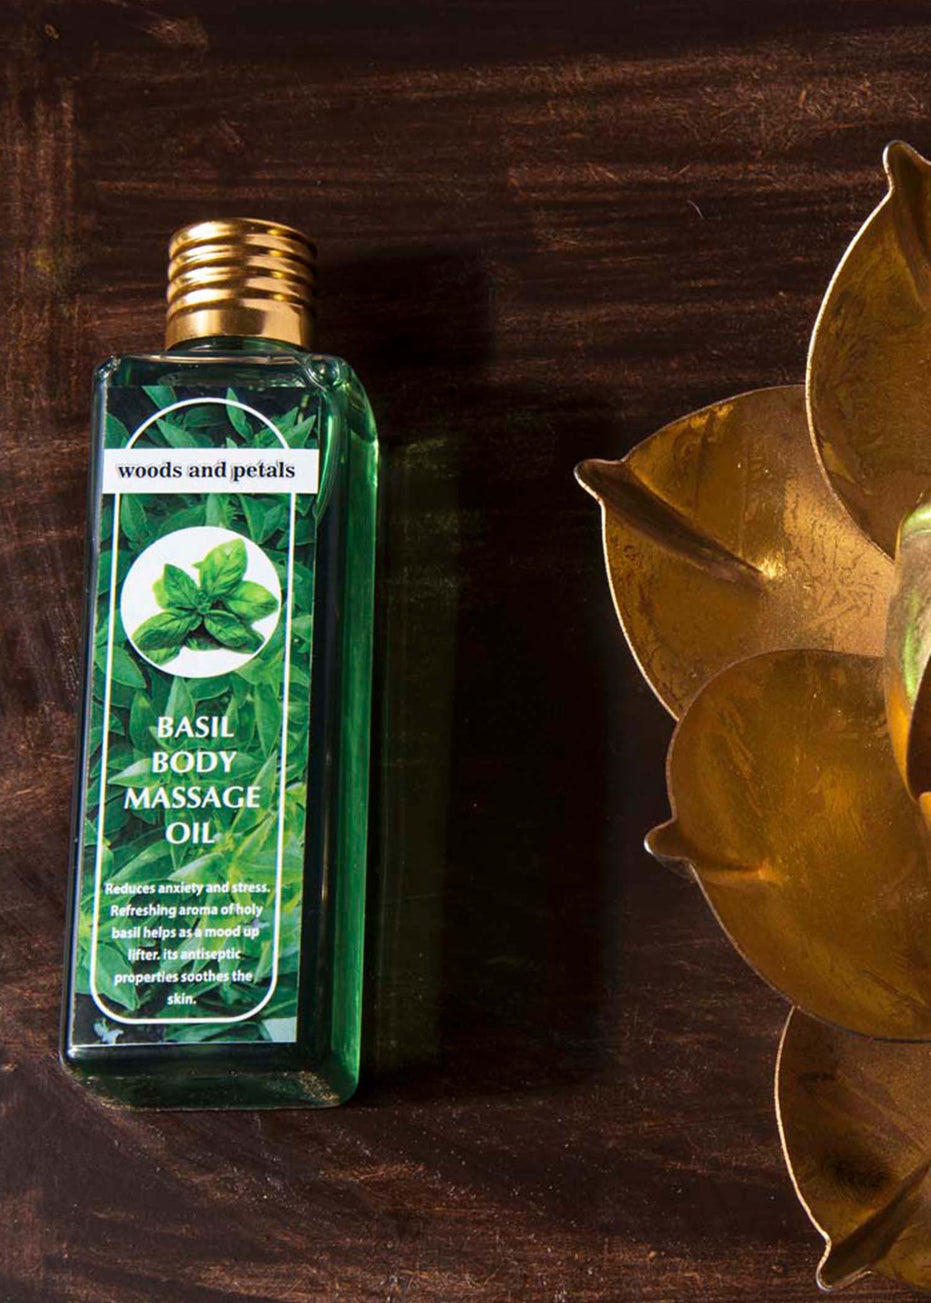 Woods And Petals Basil Body Massage Oil, Body Oil, Woods And Petals, ihaat, [made_in_india], [handmade] - ihaat